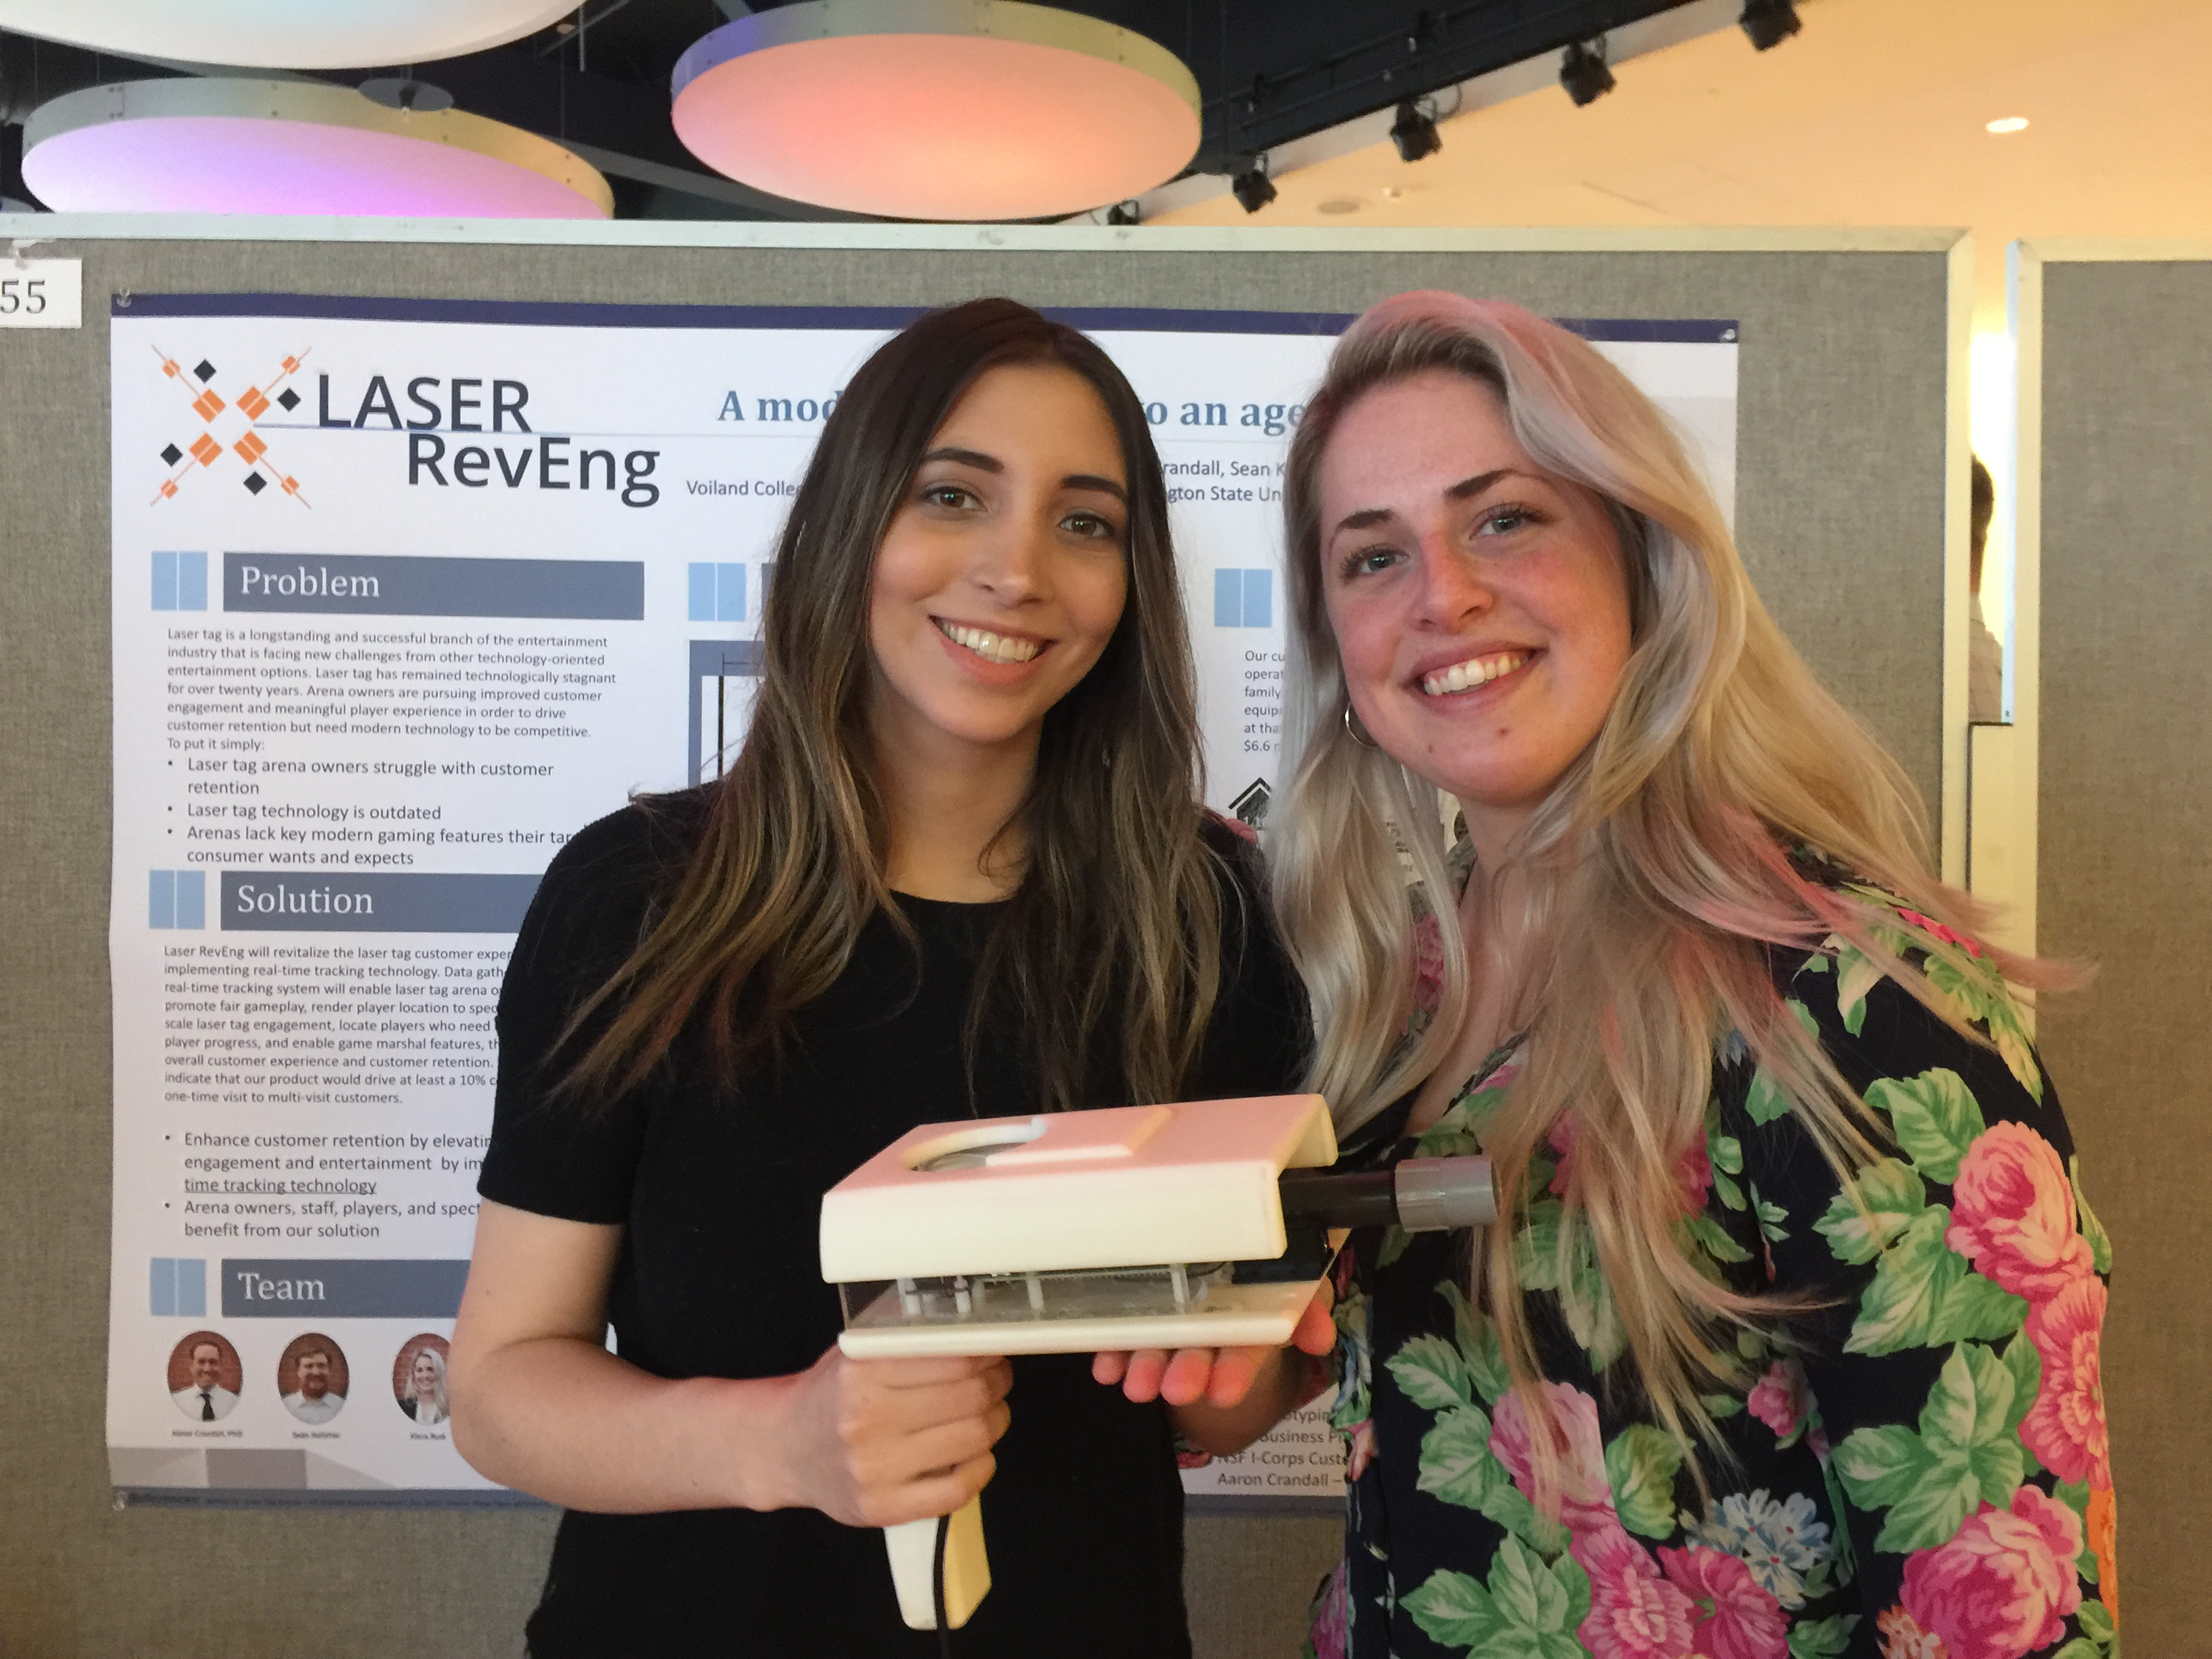 Kiera Rust standing next to Samantha Grindrod who is holding a prototype of their laser tag blaster.